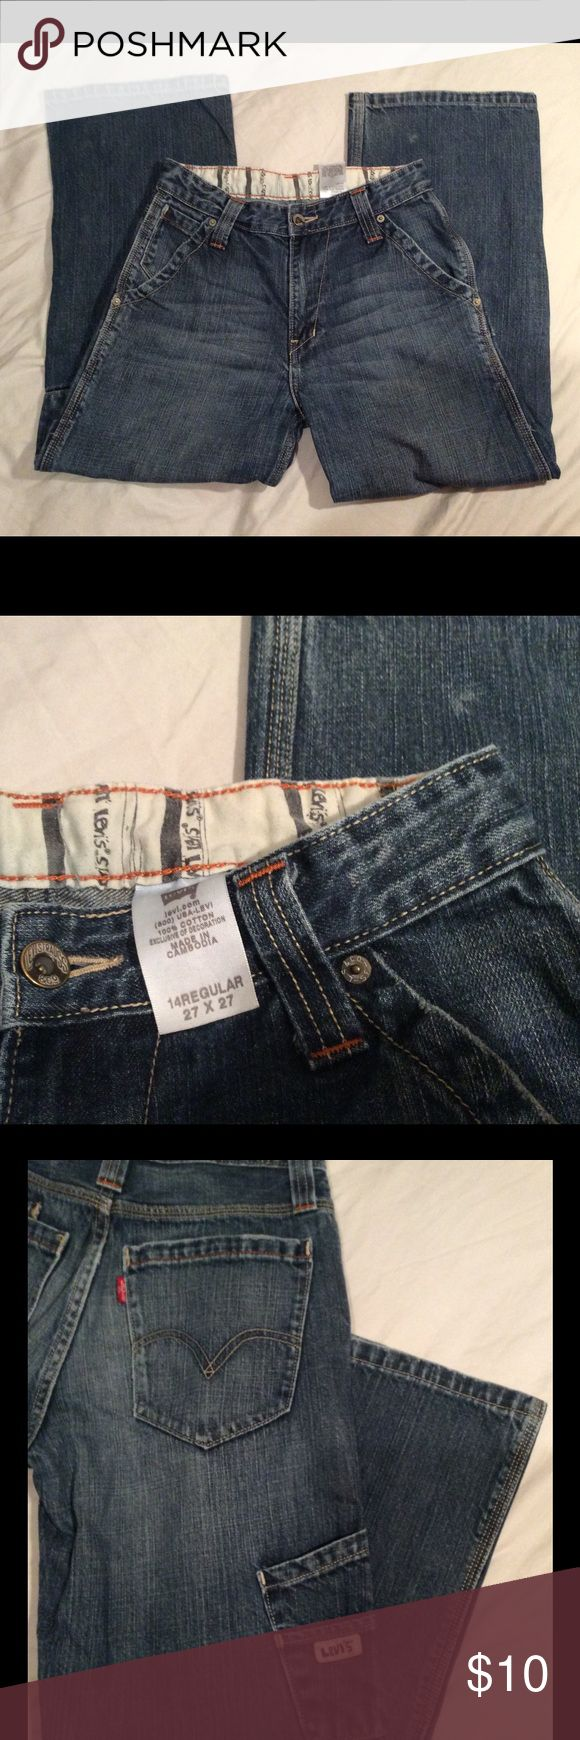 Levi's Dungarees Jeans Size 14 Reg Levi's Dungarees Jeans Size 14 Reg.  Inseam 21.   IMMACULATE CONDITION!!!                             No rips, holes, or stains.  Smoke-free and Pet-free environment. Levi's Bottoms Jeans